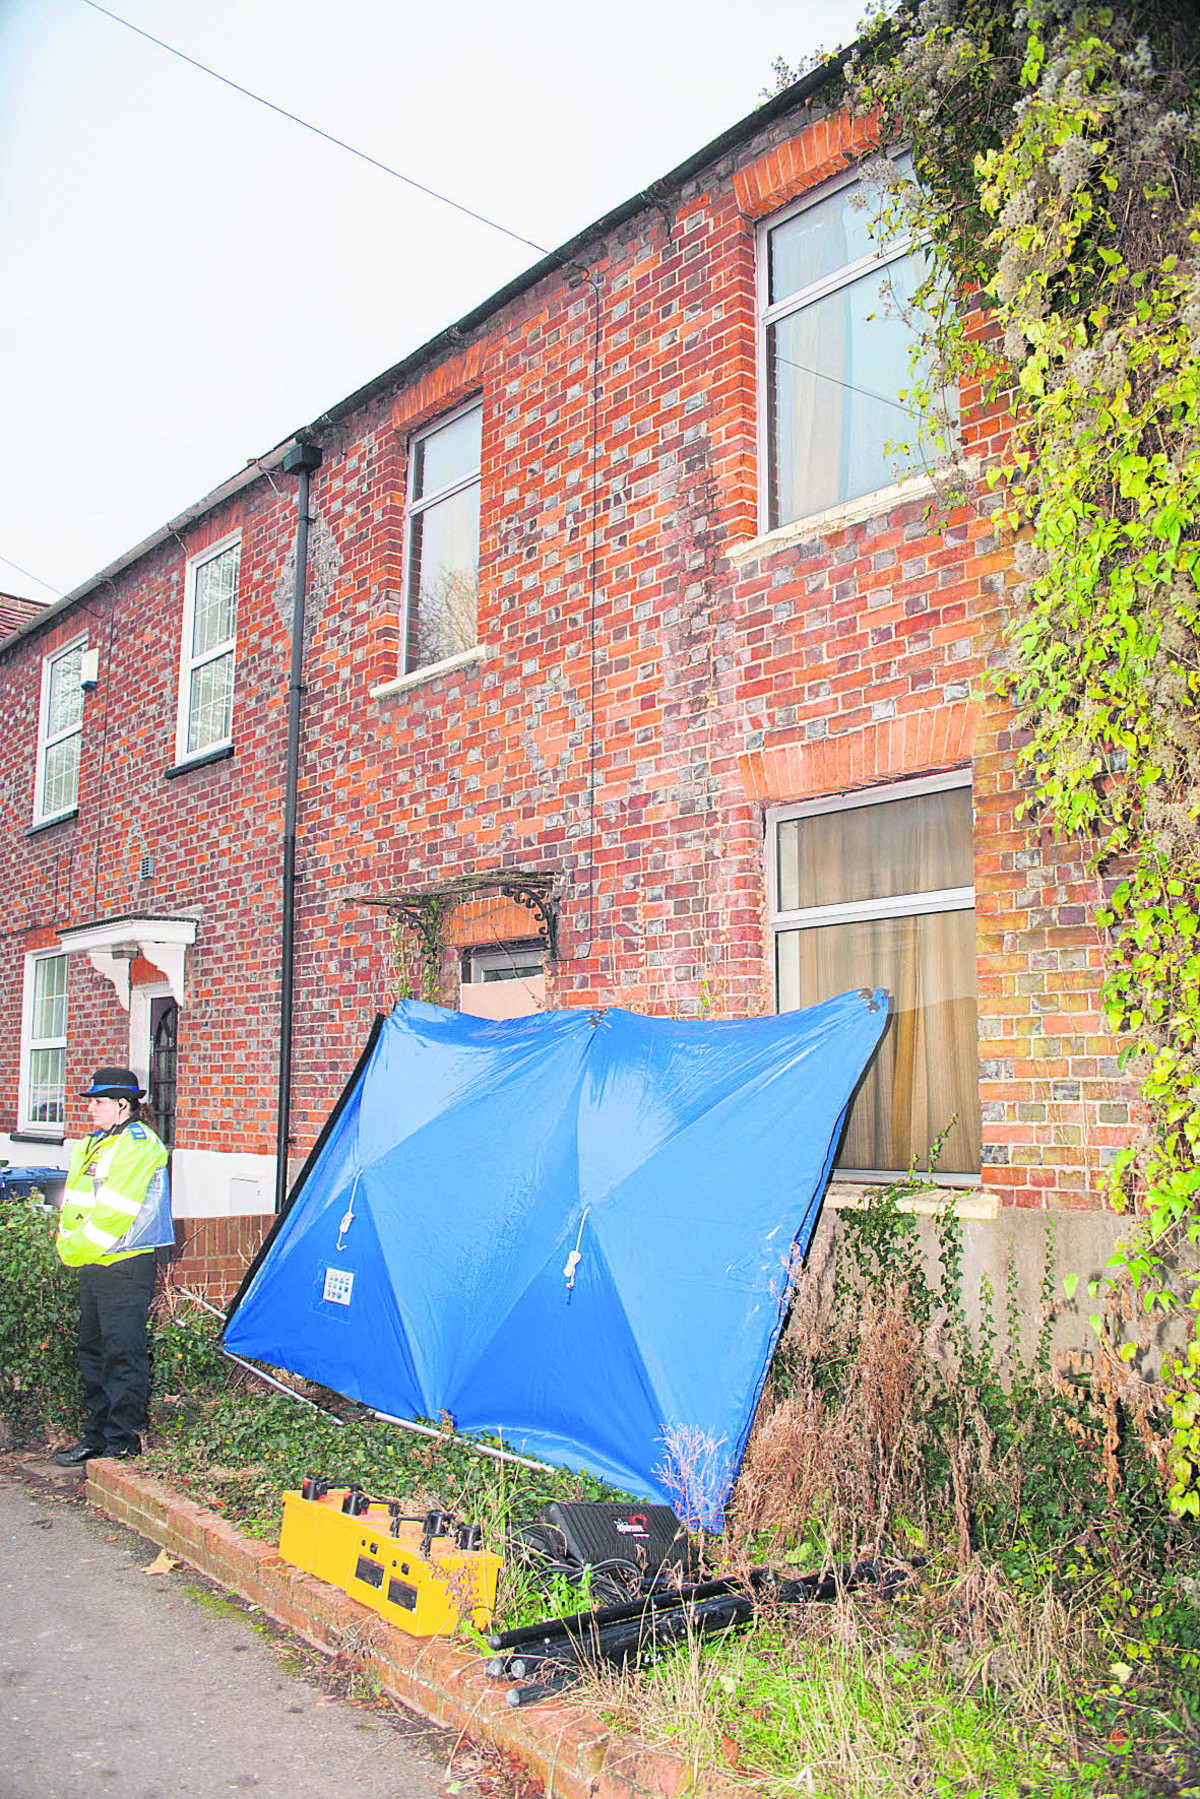 Why did council not act sooner over home where two bodies were found after months?